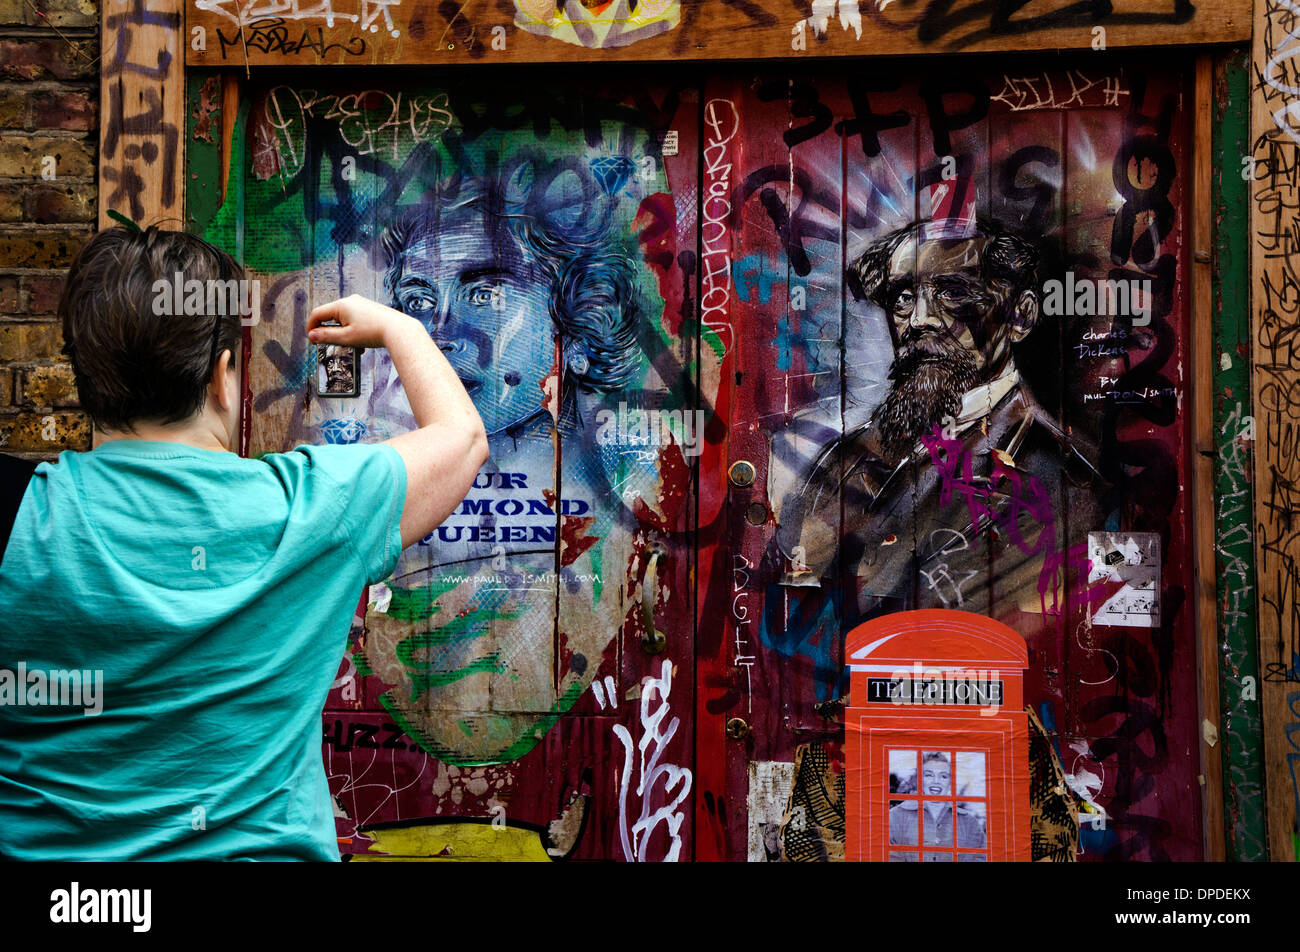 Woman in blue top photographing graffiti with a mobile phone in the Brick Lane area, East London E1 UK Stock Photo